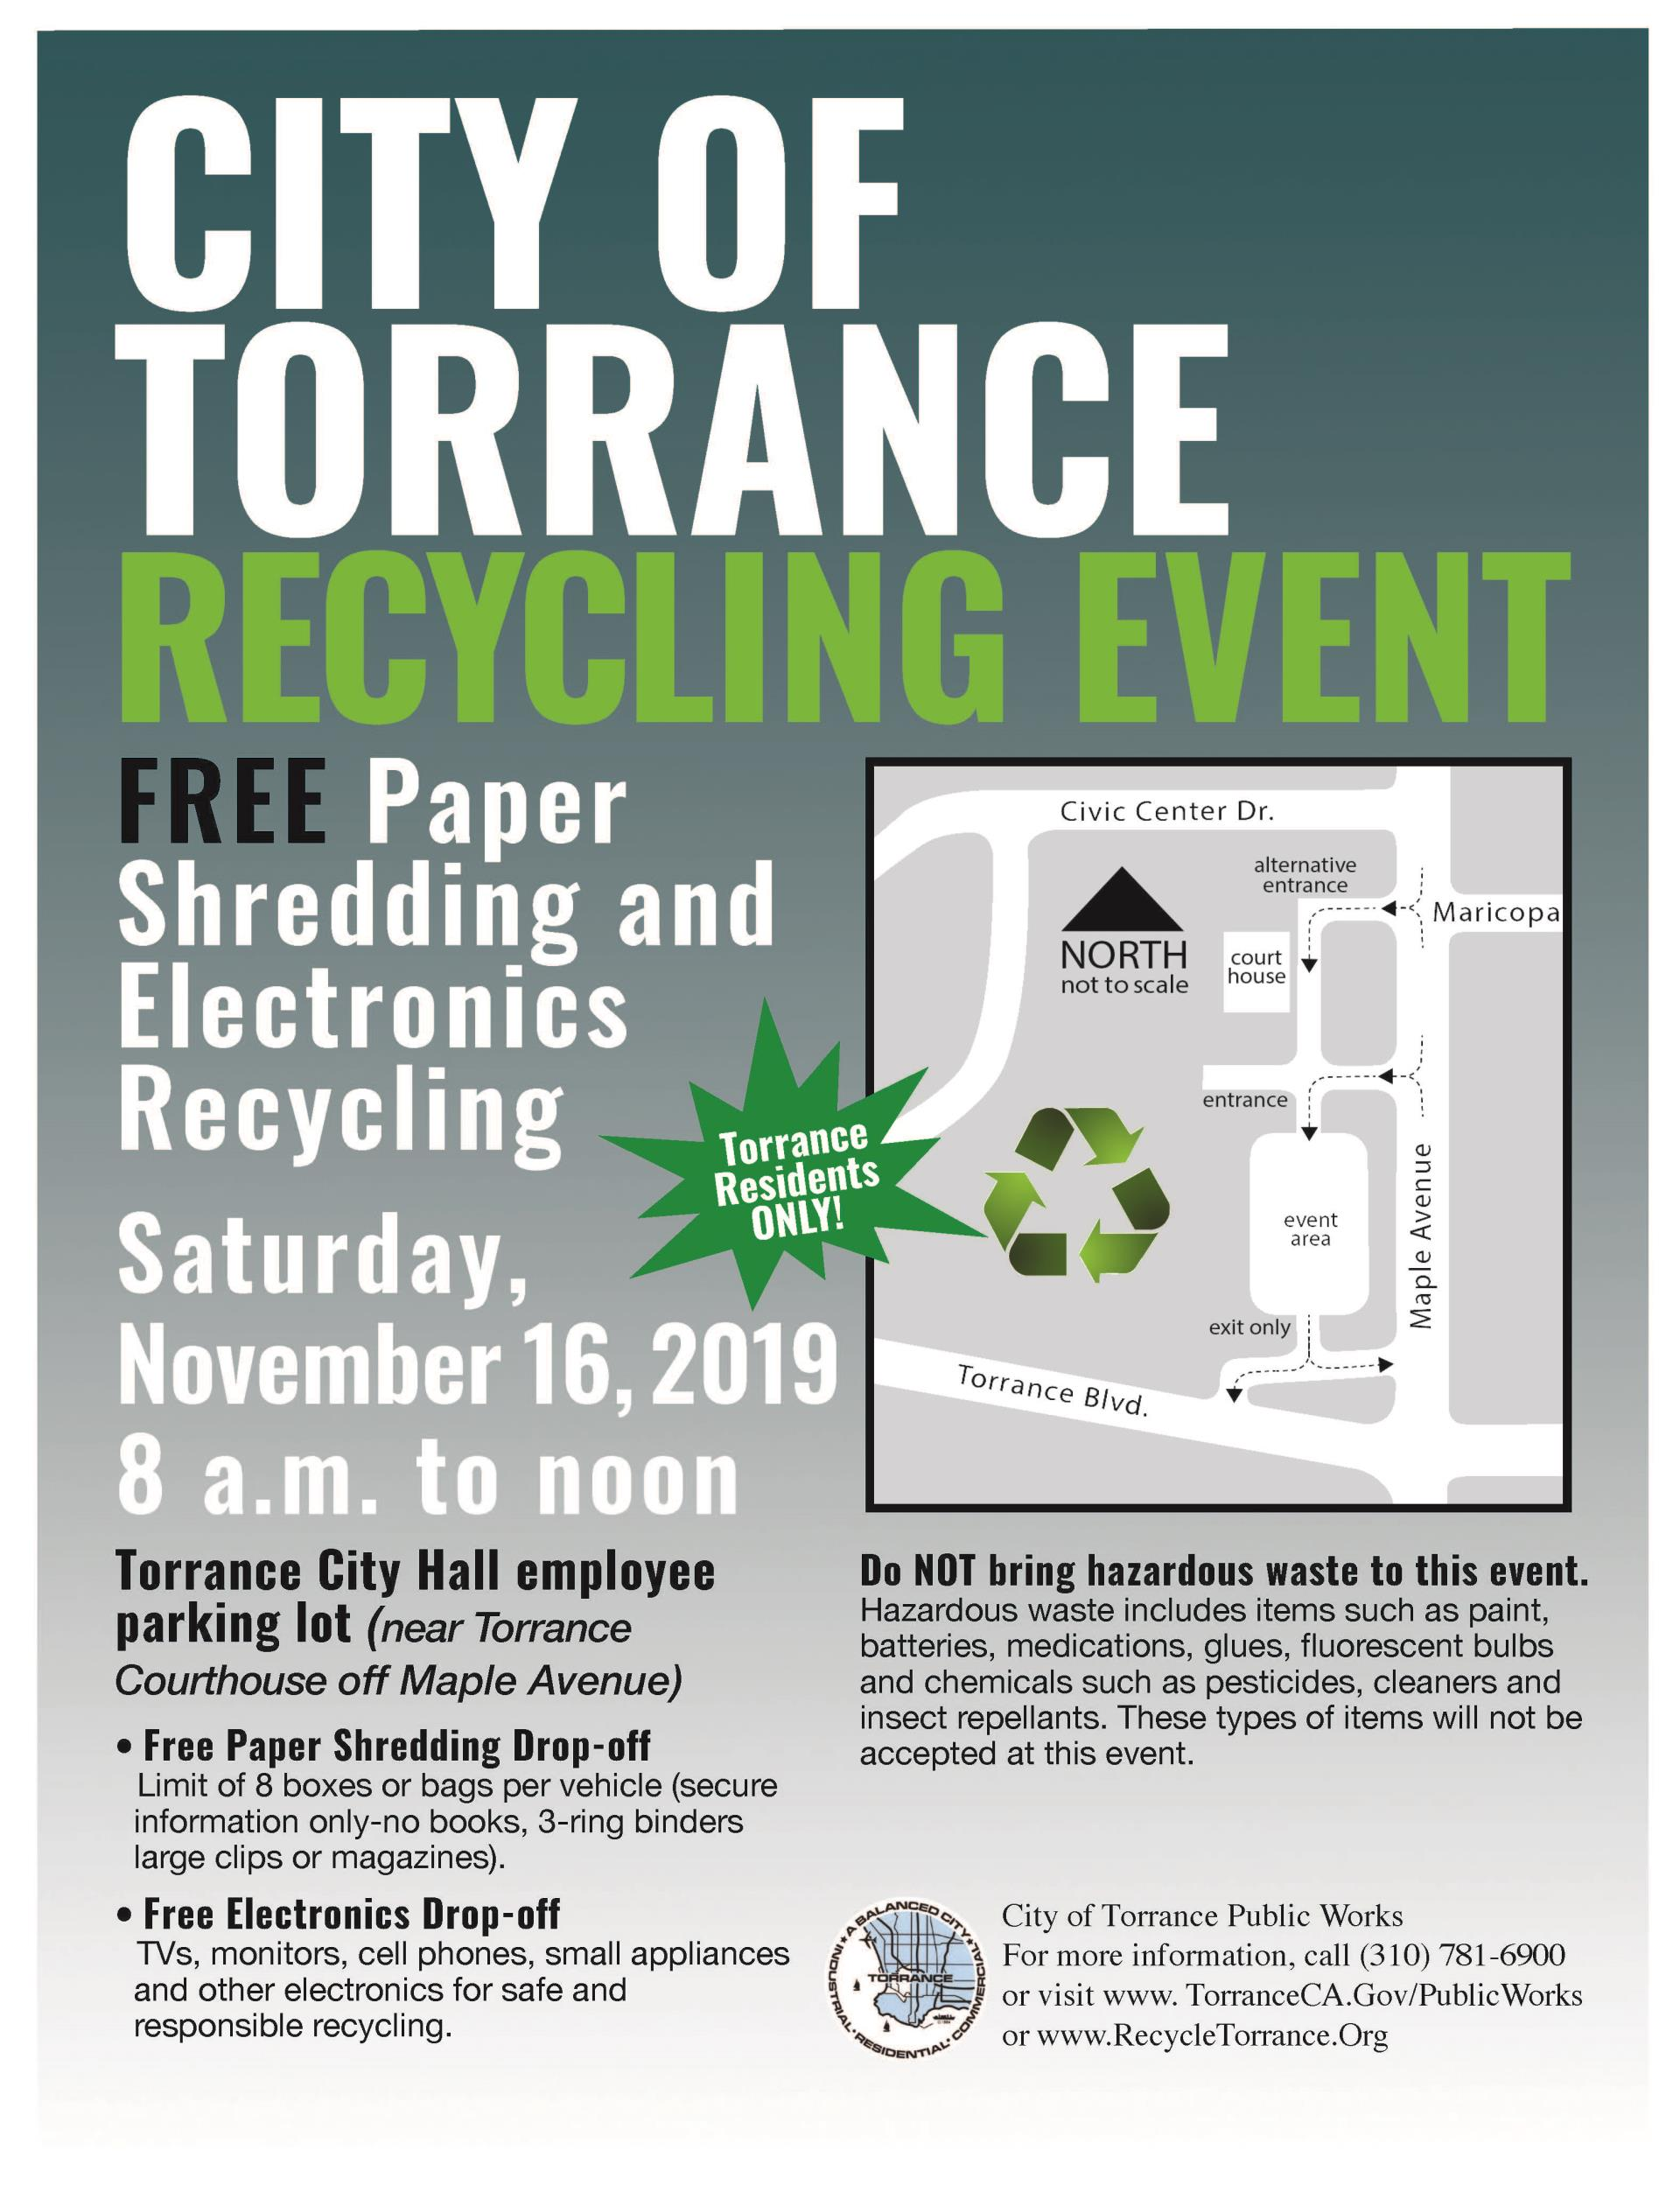 Recycling-PaperShreddingEvent11-16-19